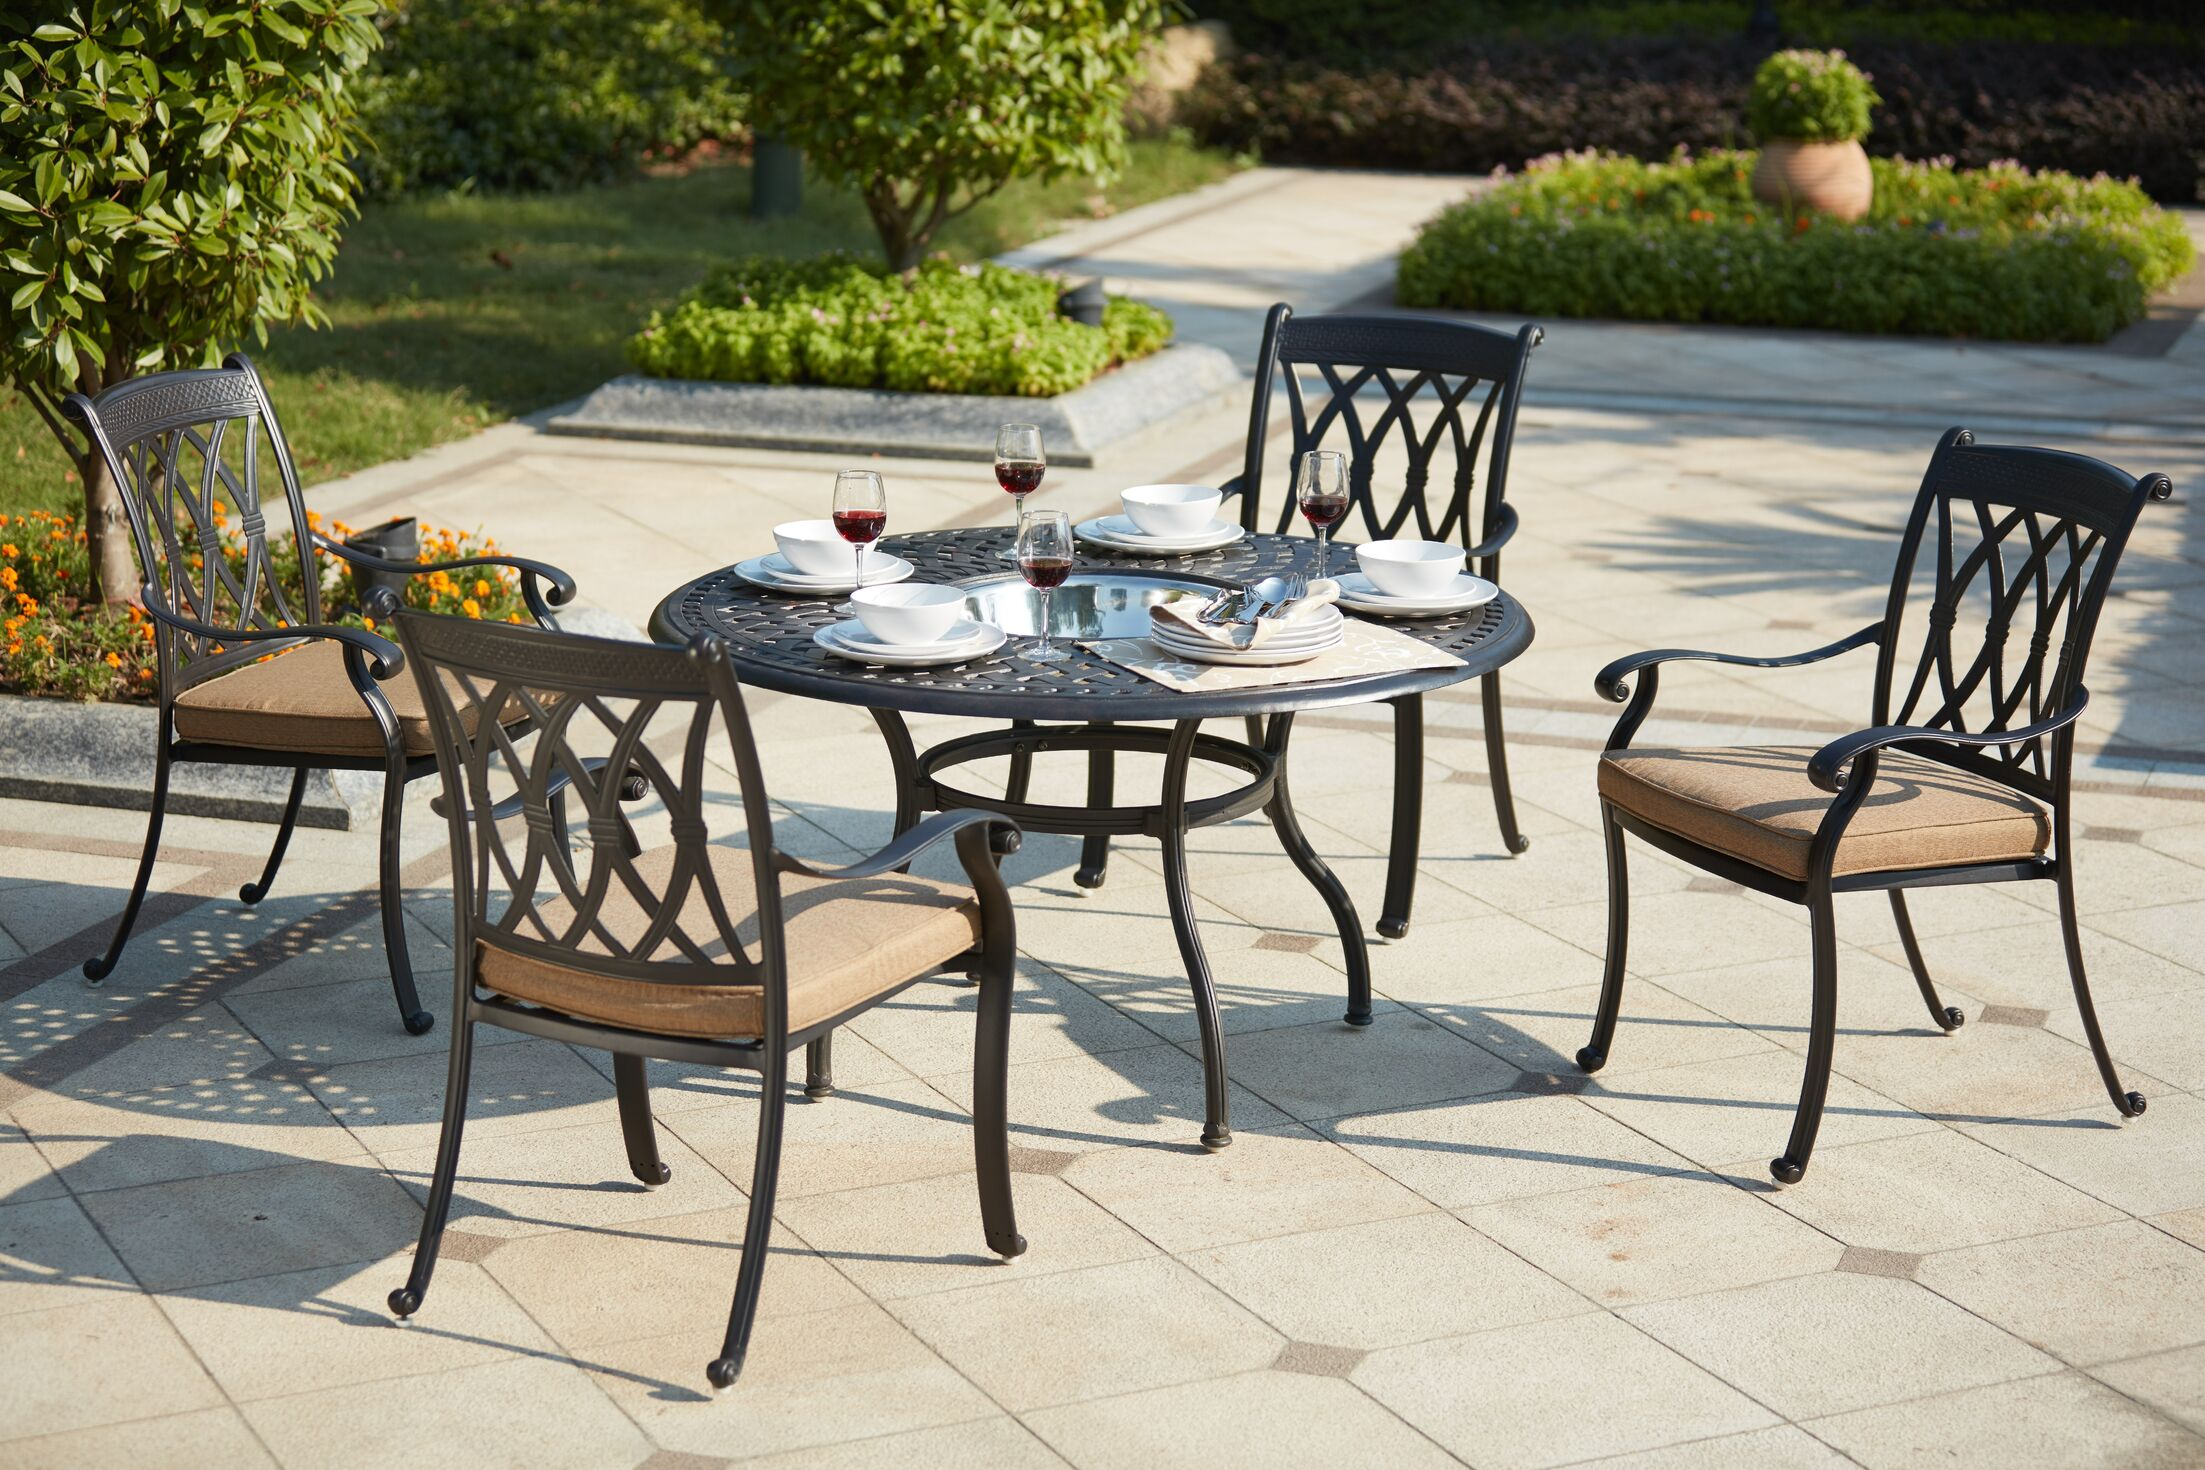 Melchior 5 Piece Dining Set with Cushions